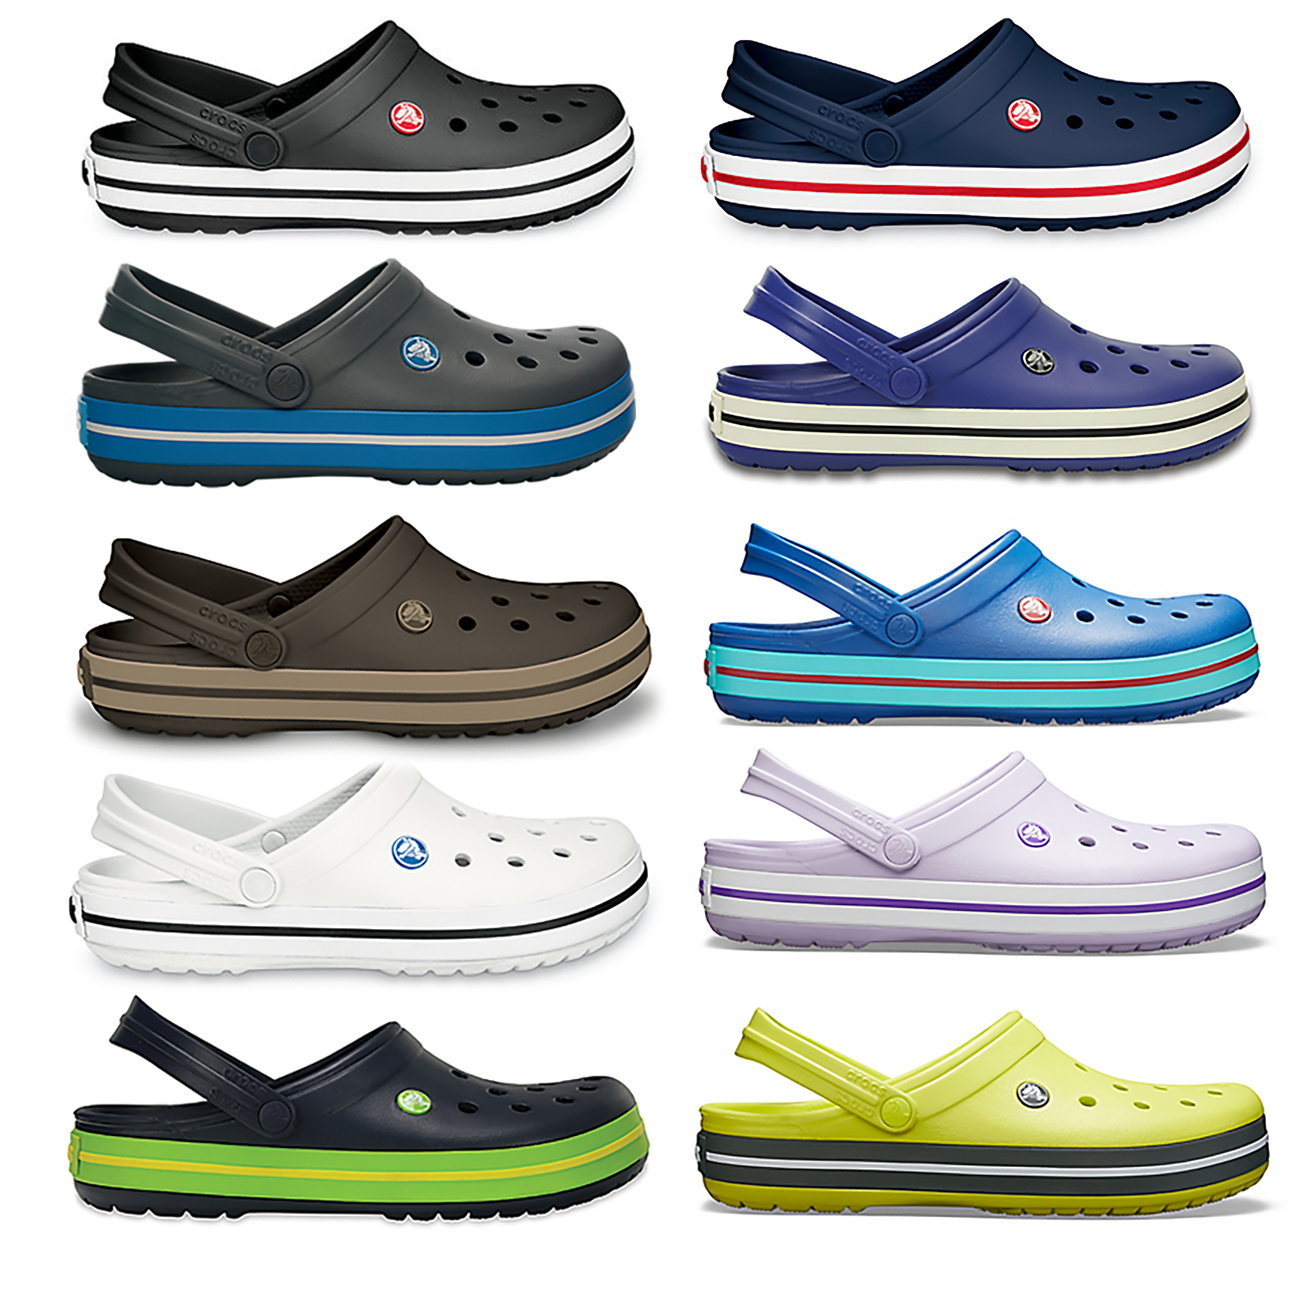 58929275b Image is loading Unisex-Adults-Crocs-Crocband-Clog -Comfort-Lightweight-Water-